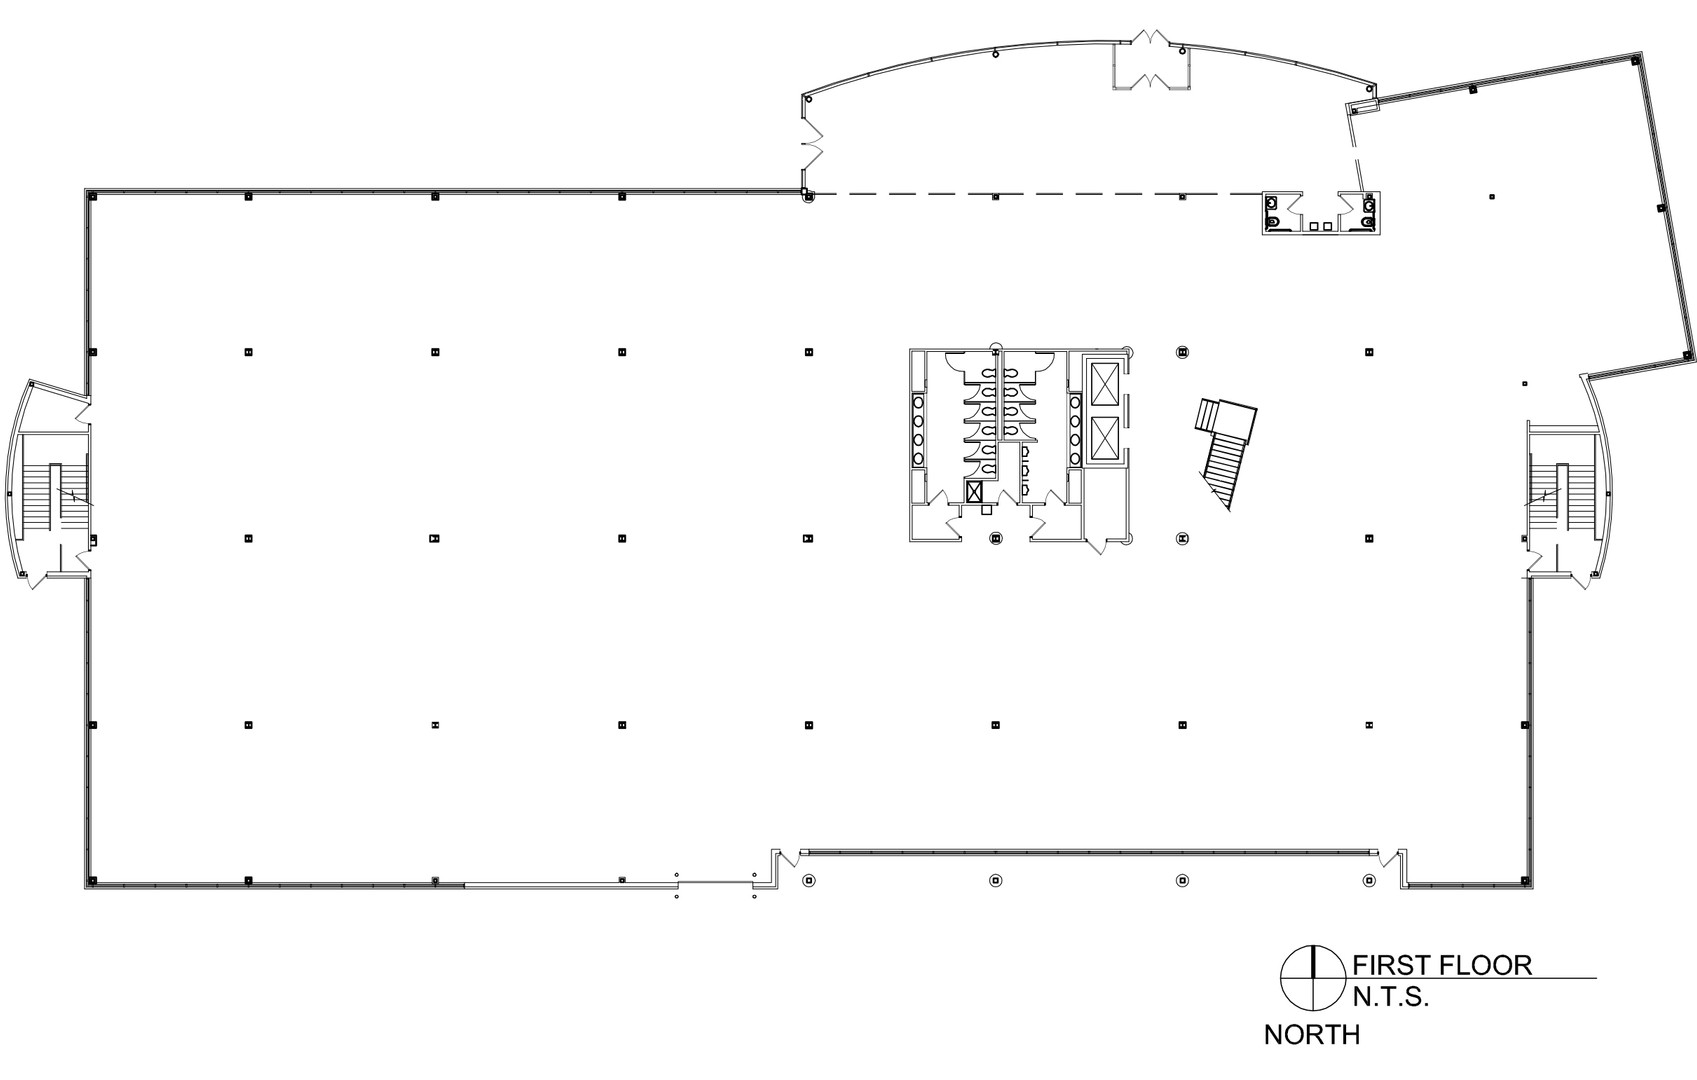 Harman12 - Floor Plans, 1st and 2nd-1.jp